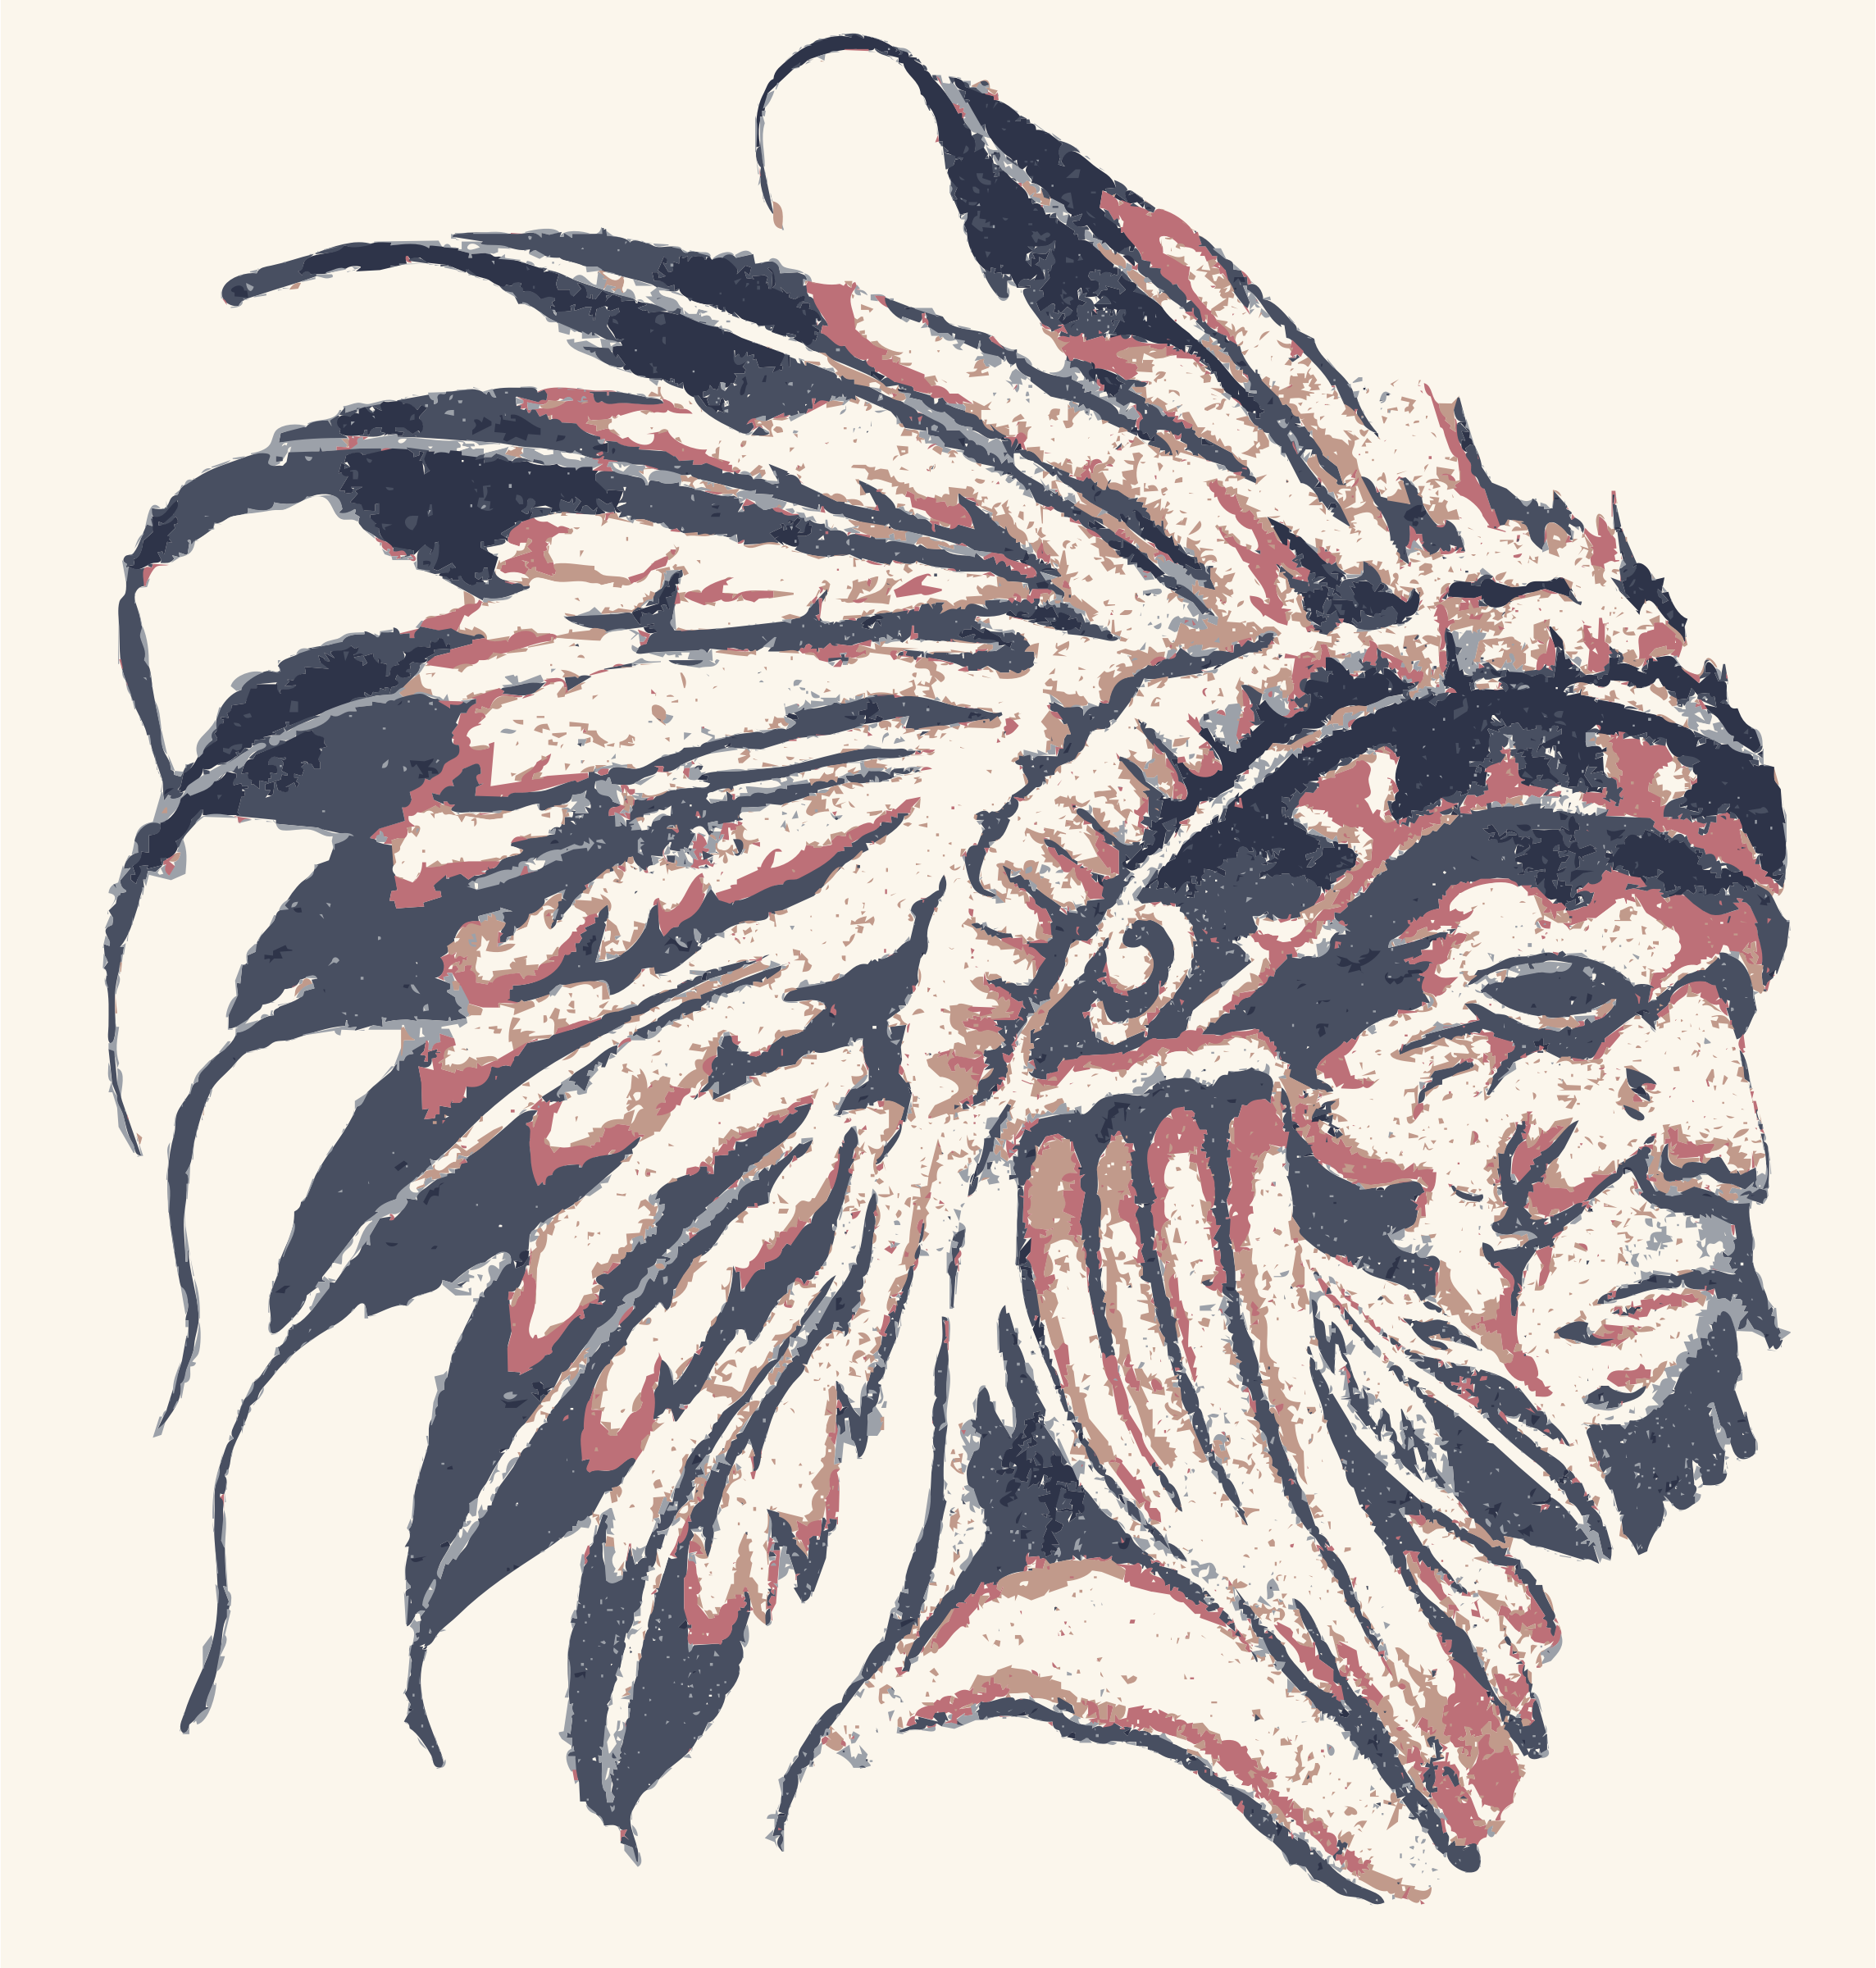 Native American Street Art v1.png (2288×2400) - PNG Native American